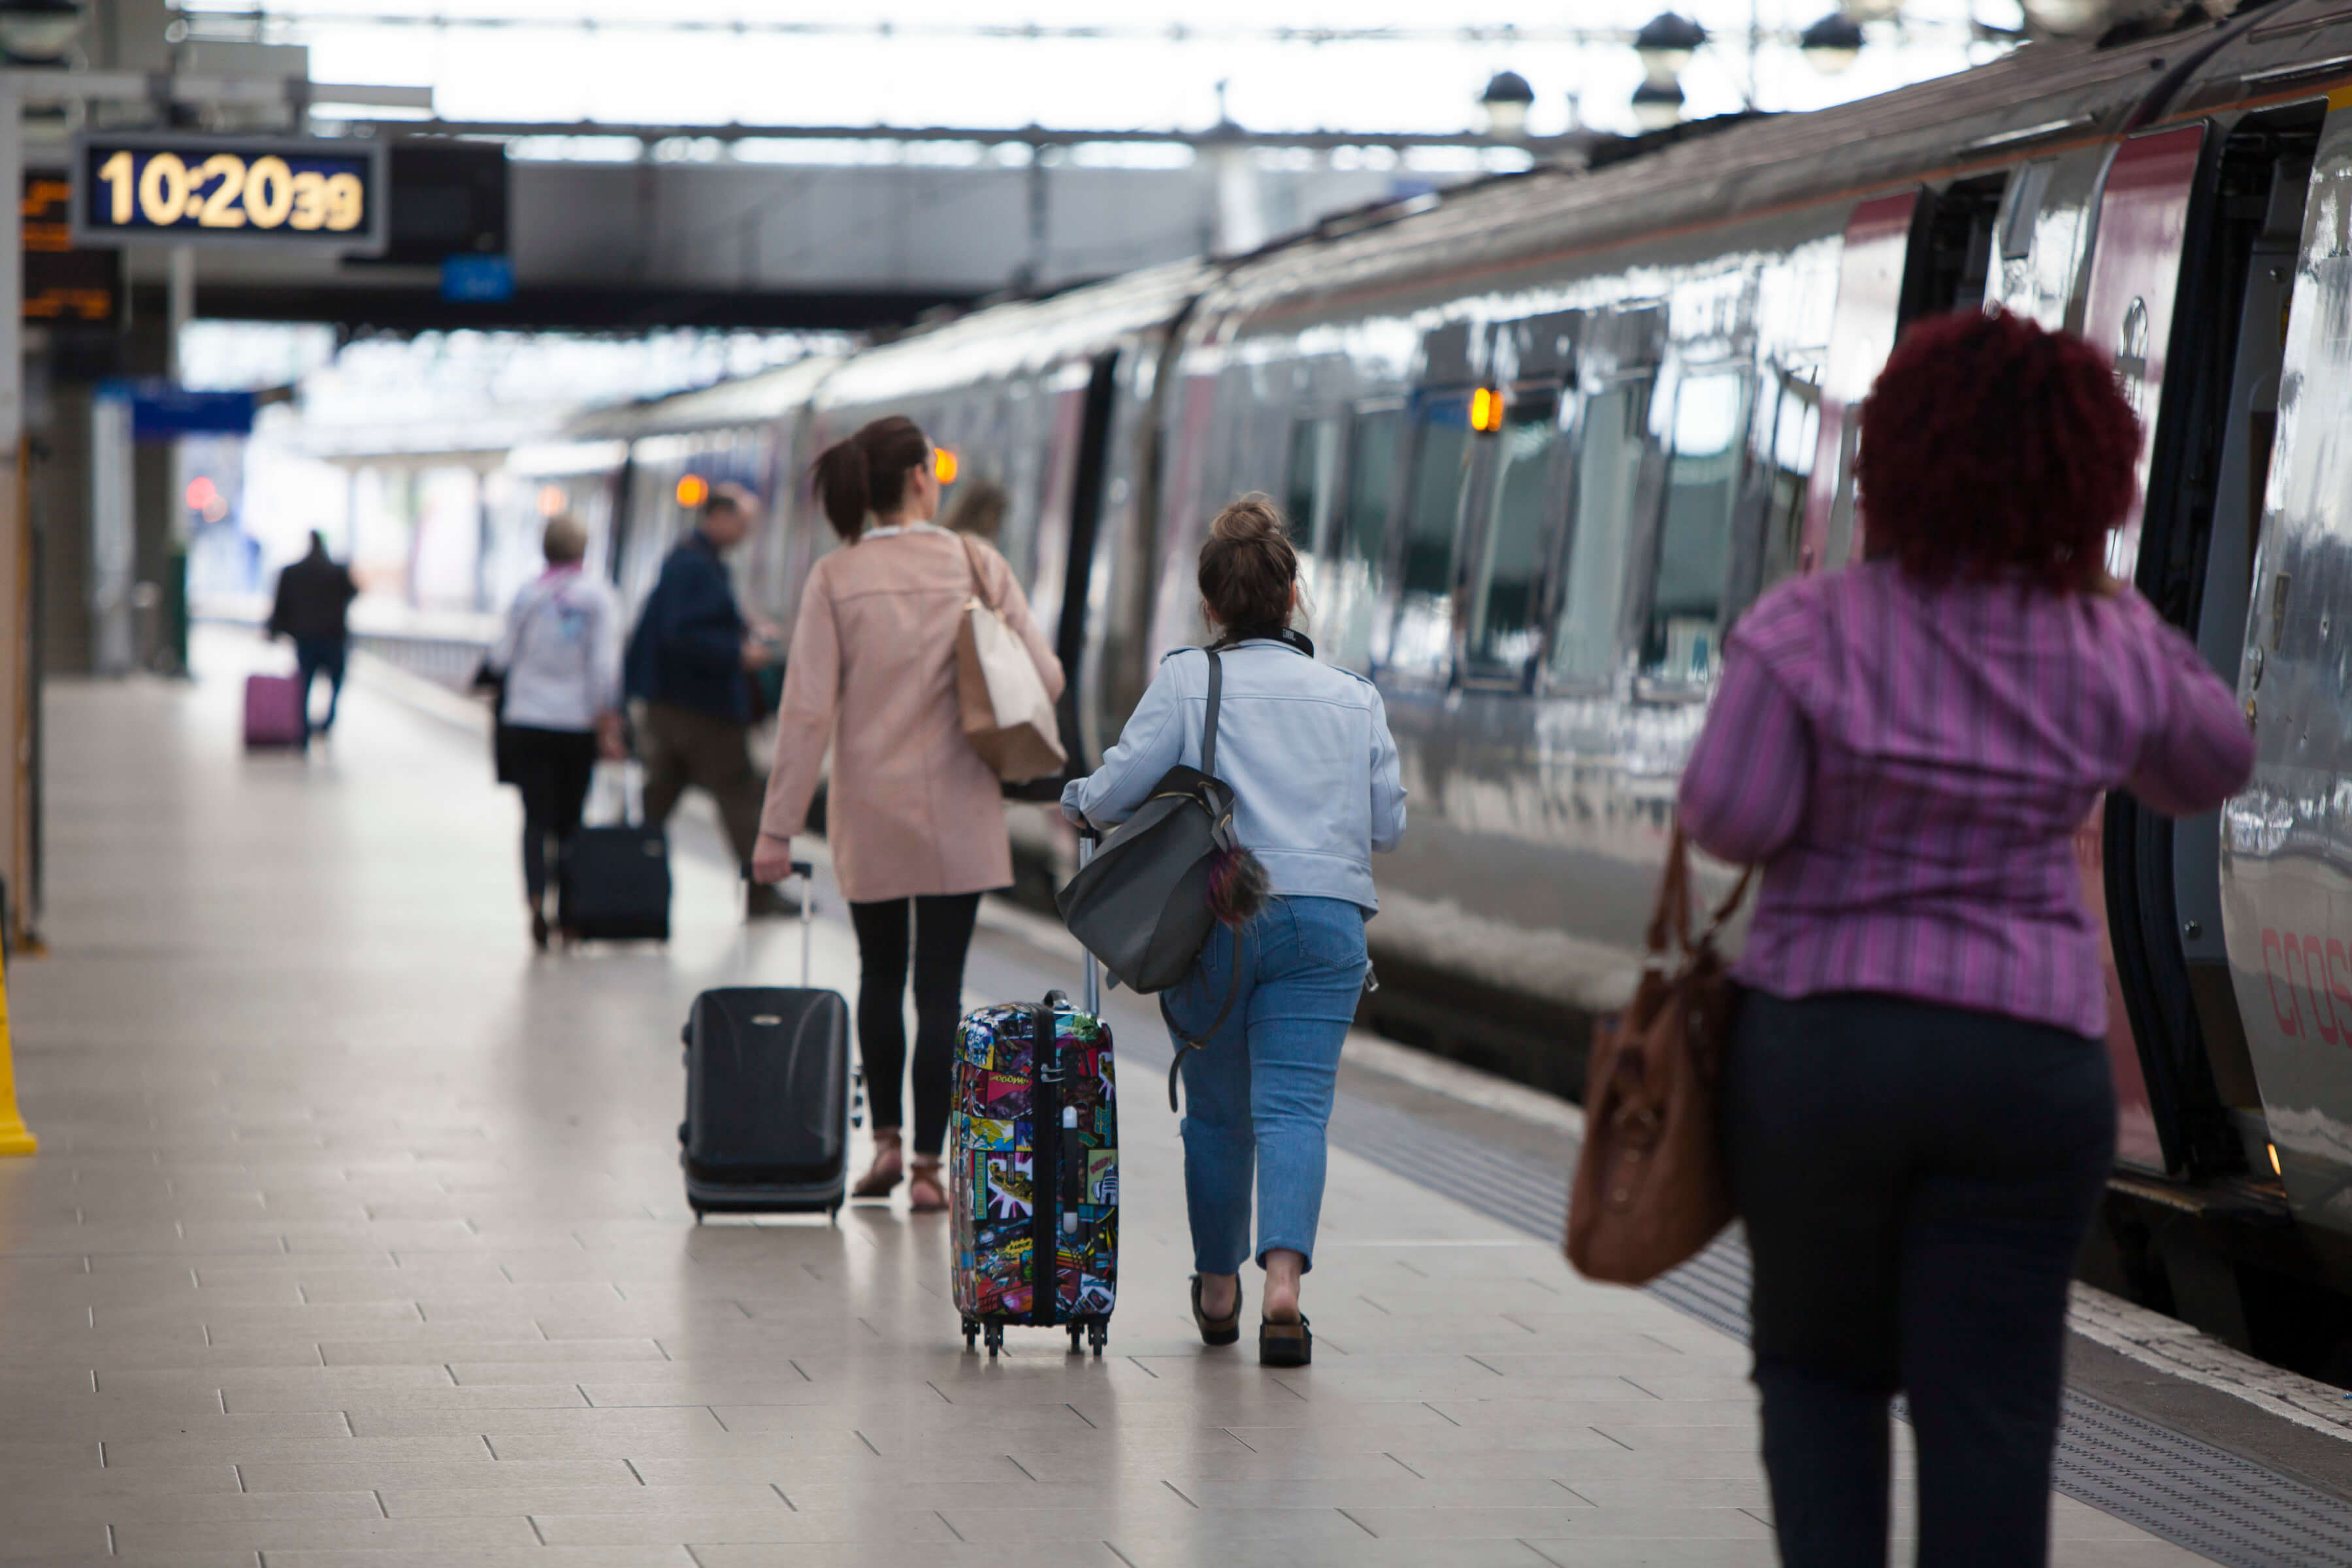 Lancashire County Council has welcomed a new transport plan which sets out an ambitious vision for transforming connections across the north of England.     The county council is a founding member of Transport for the North which today published its draft Strategic Transport Plan, making the case...